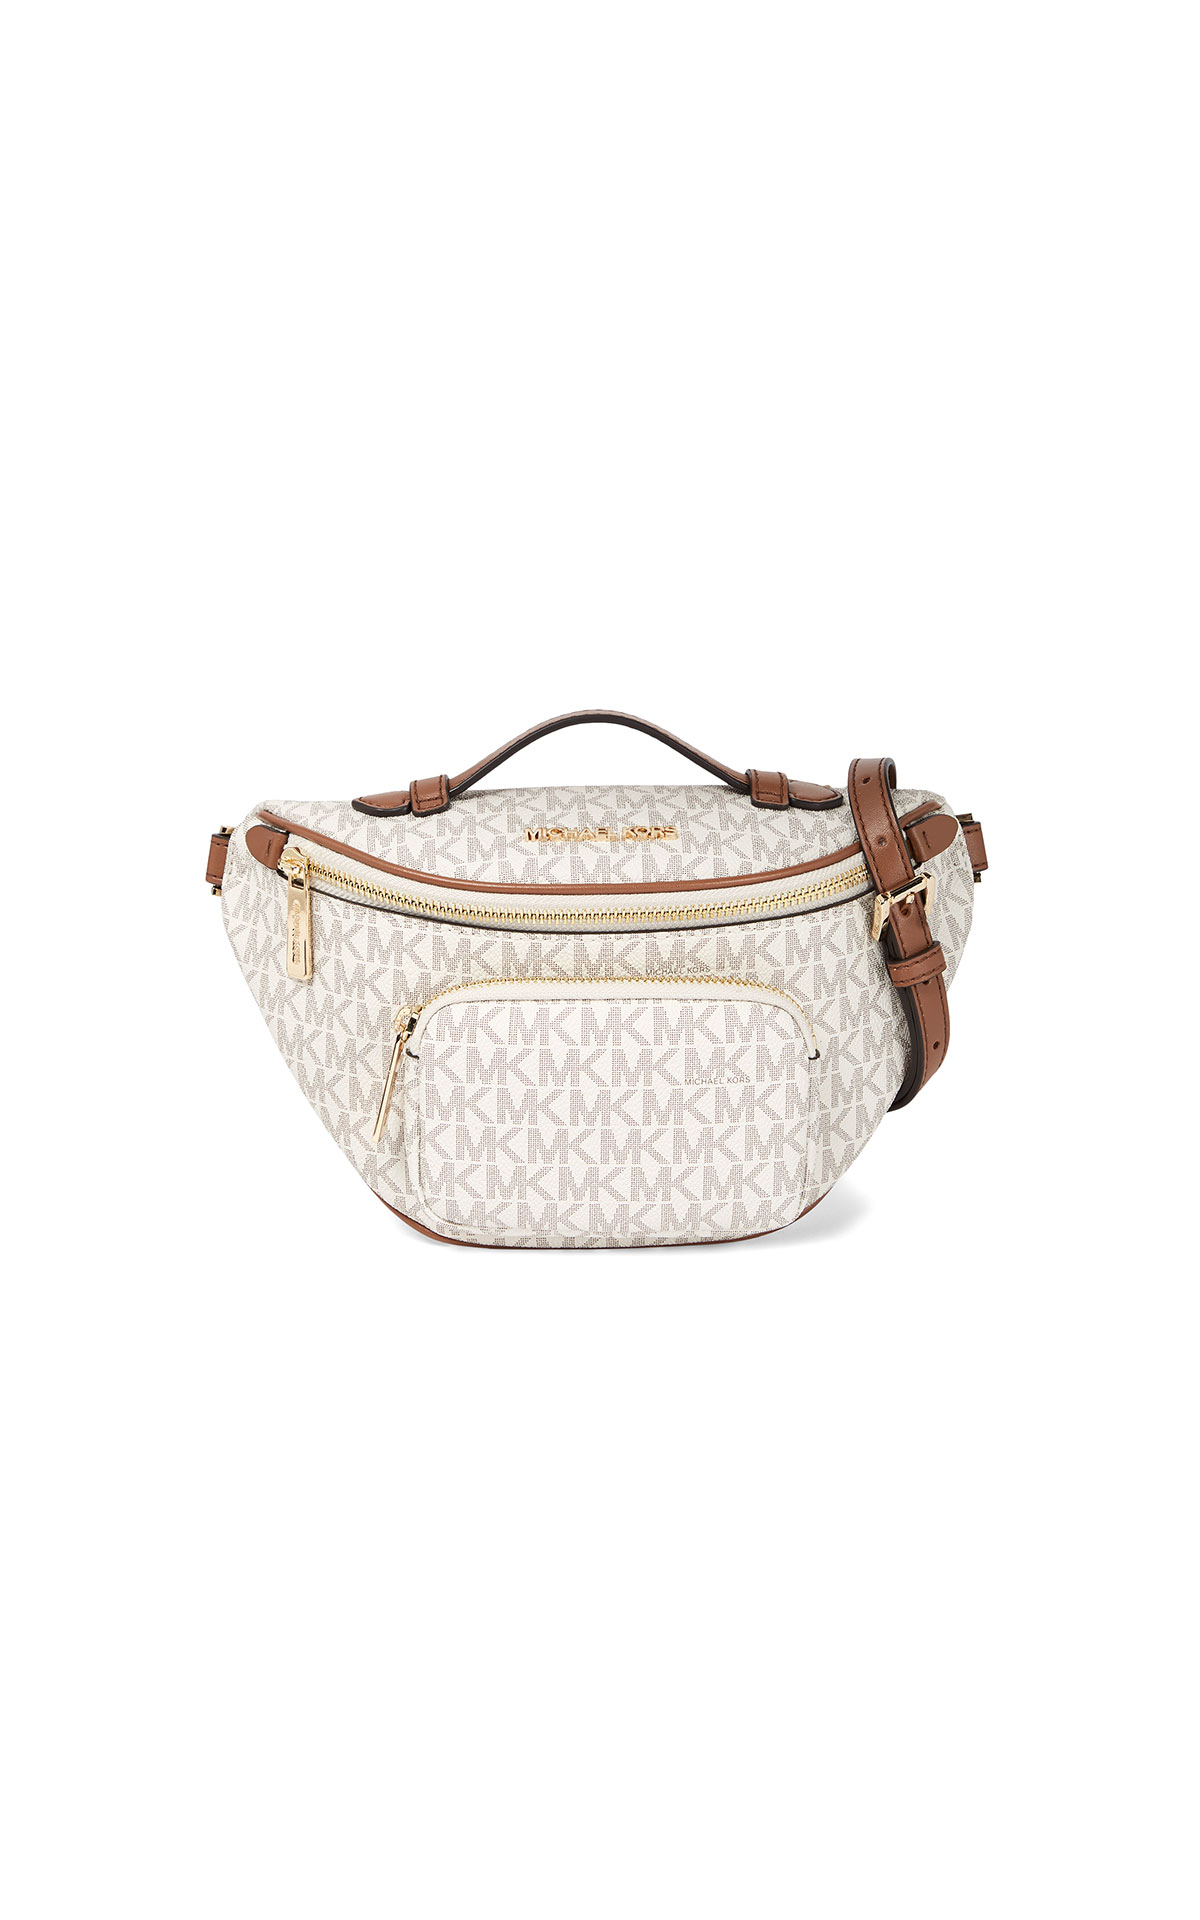 Michael Kors erin extra-small waist pack crossbody at The Bicester Village Shopping Collection